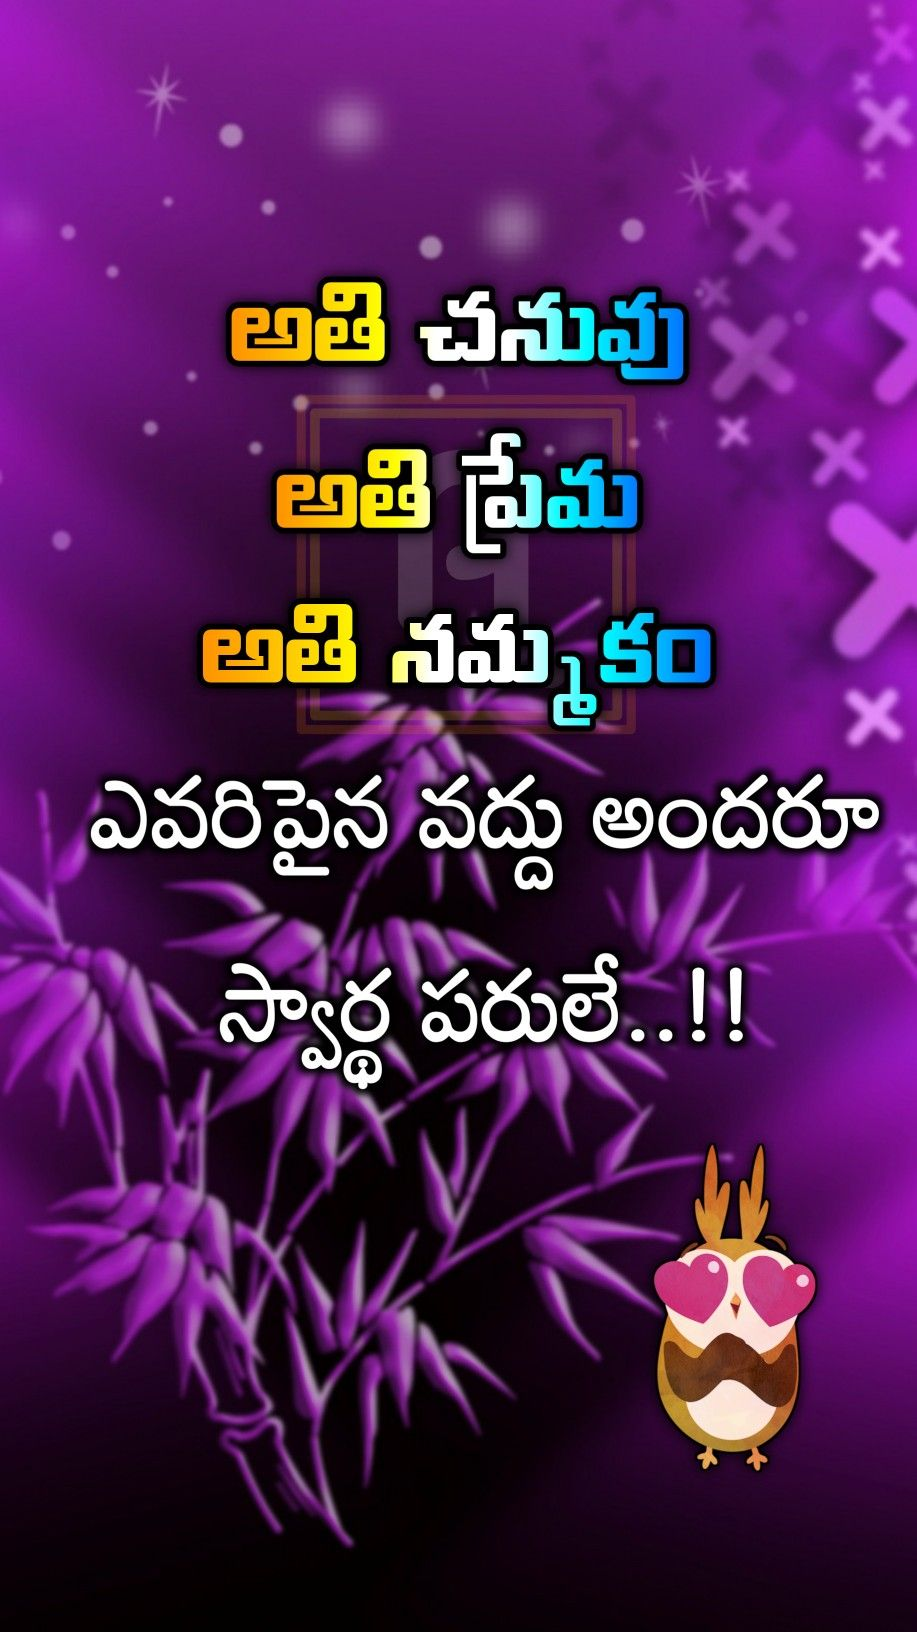 Pin By Dilsha Shaik On My Feelings In 2020 Telugu Inspirational Quotes Cool Words Inspirational Quotes